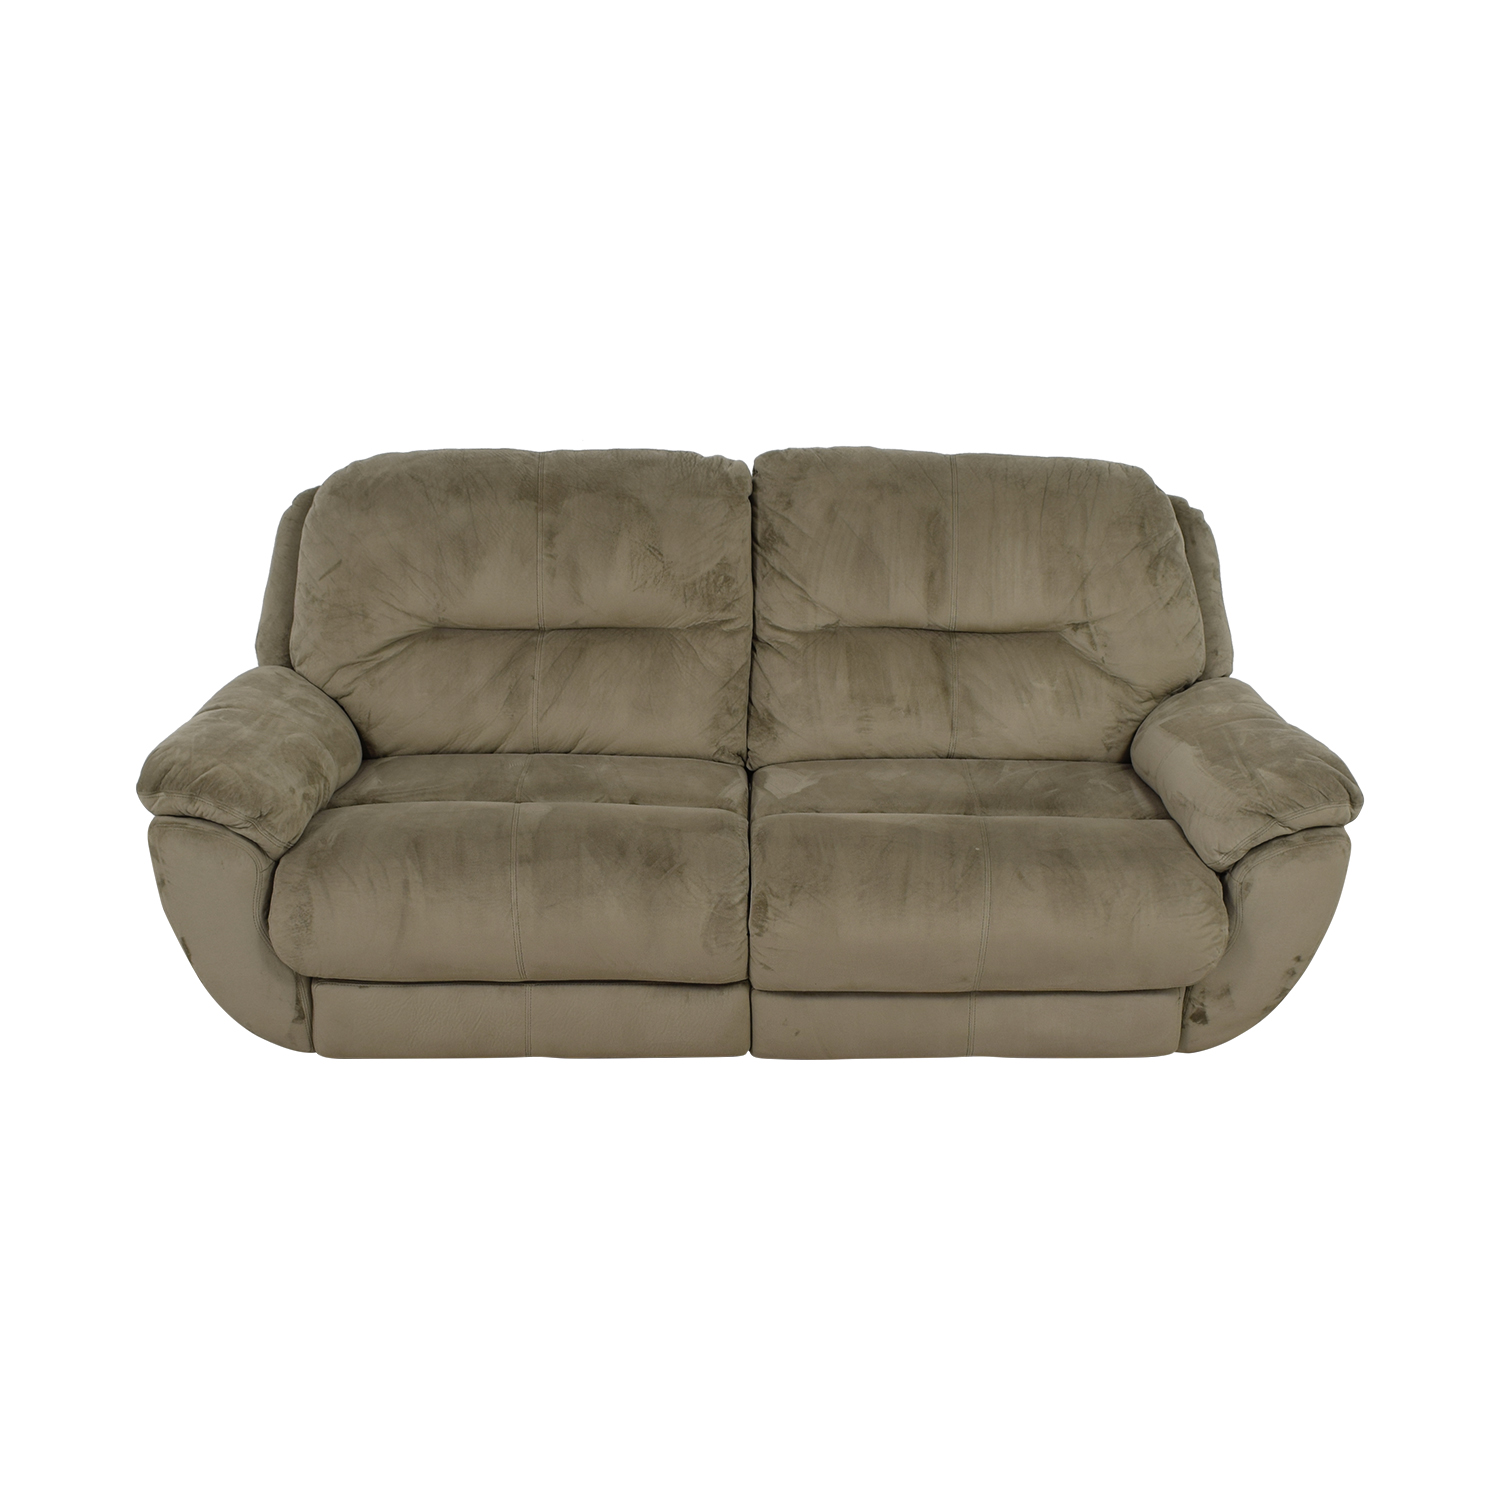 Raymour & Flanigan Raymour & Flanigan Grey Micro-Suede Power Reclining Sofa Chairs